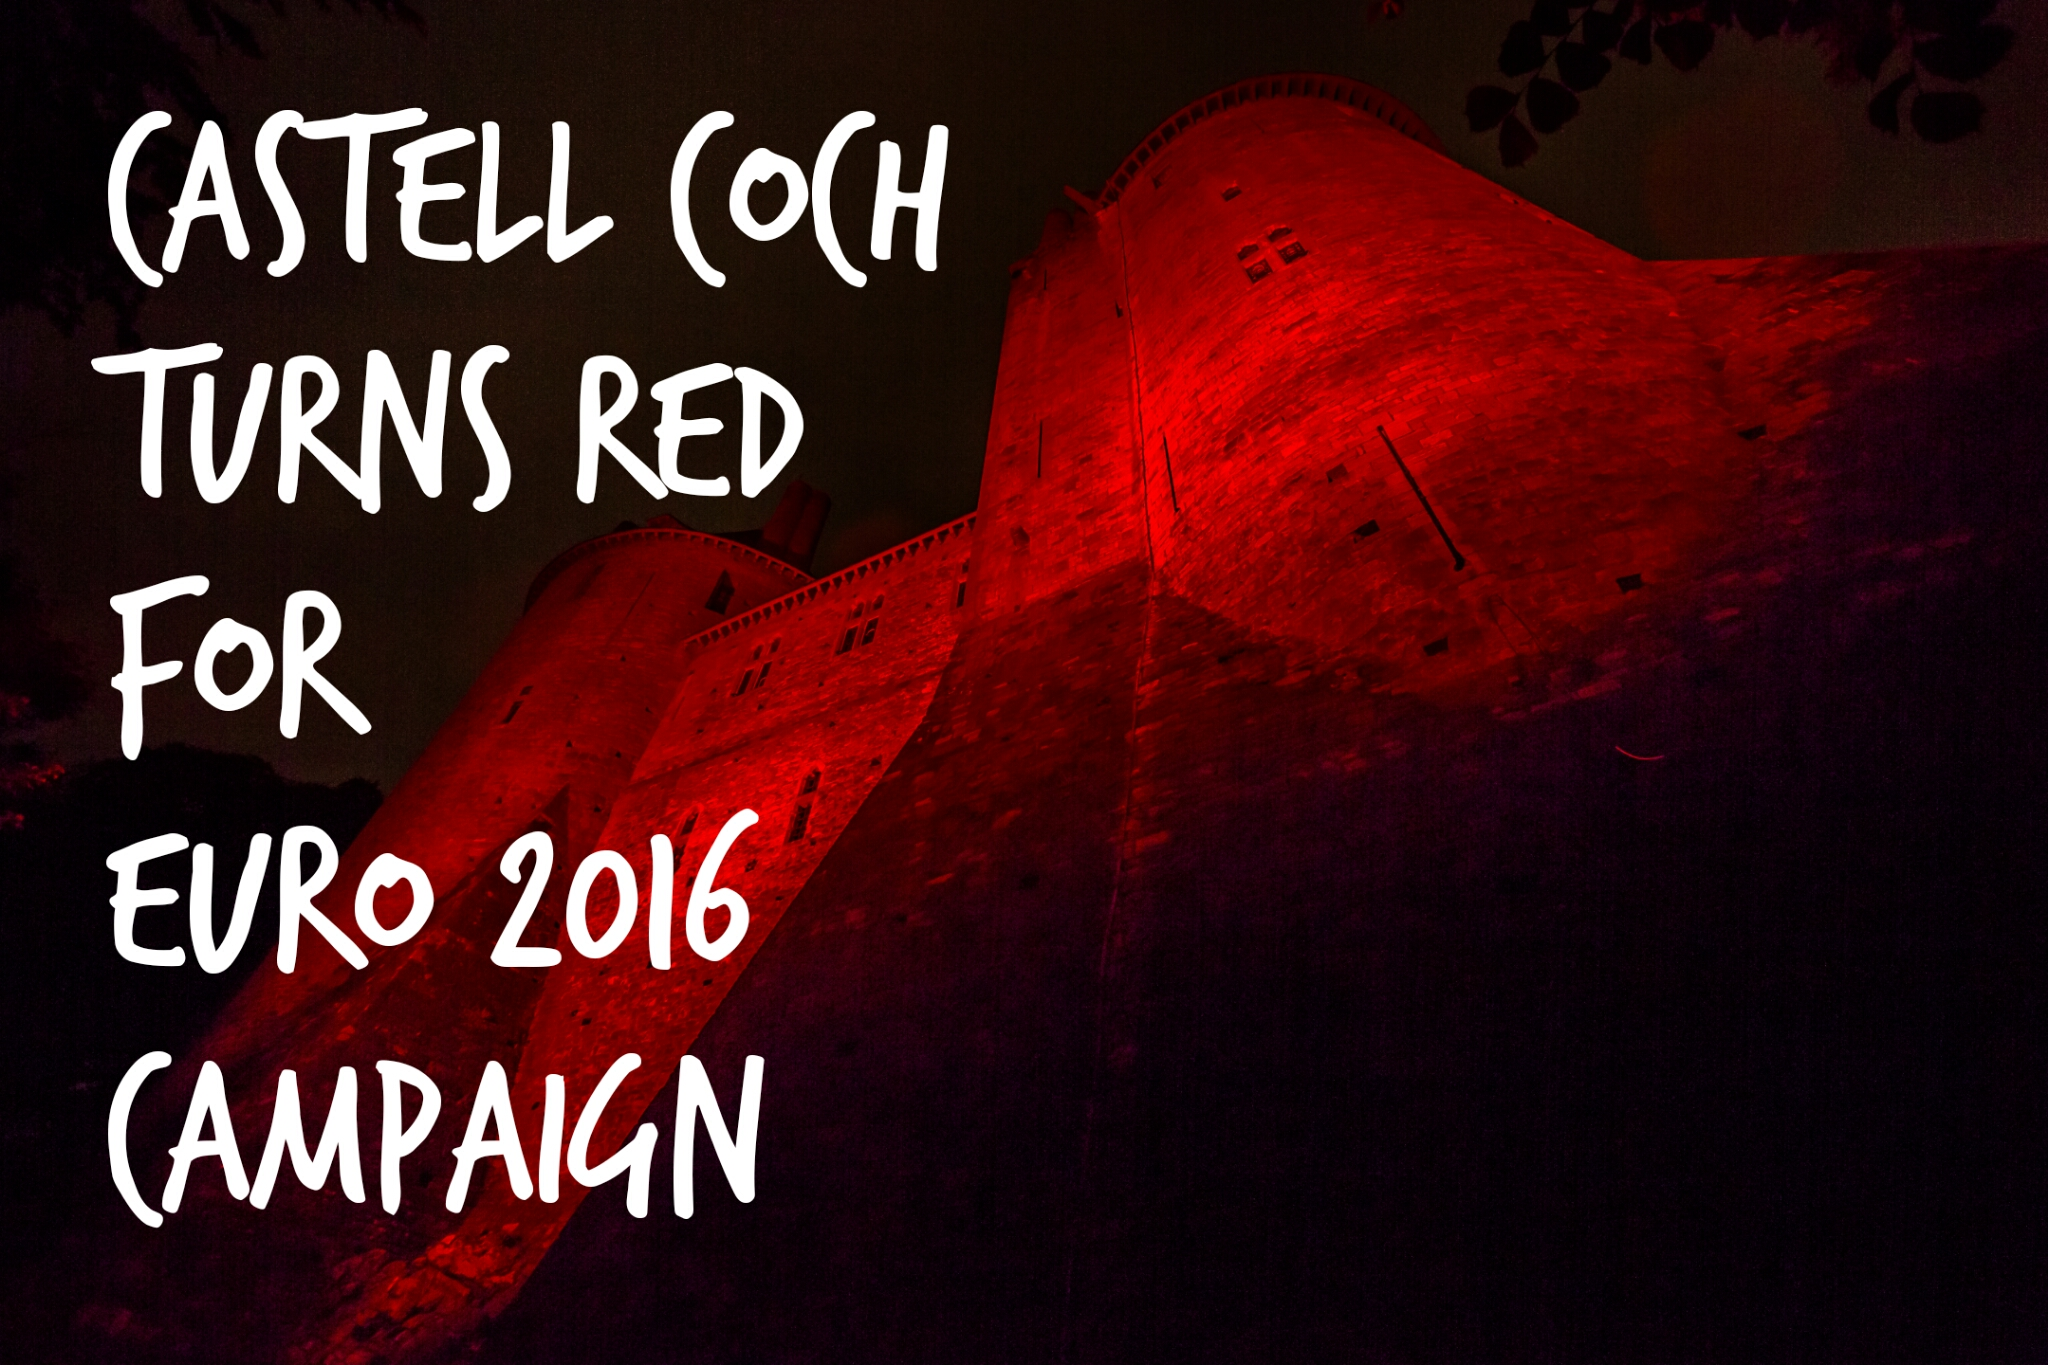 Castell Coch Turns Red for Euro 2016 Campaign